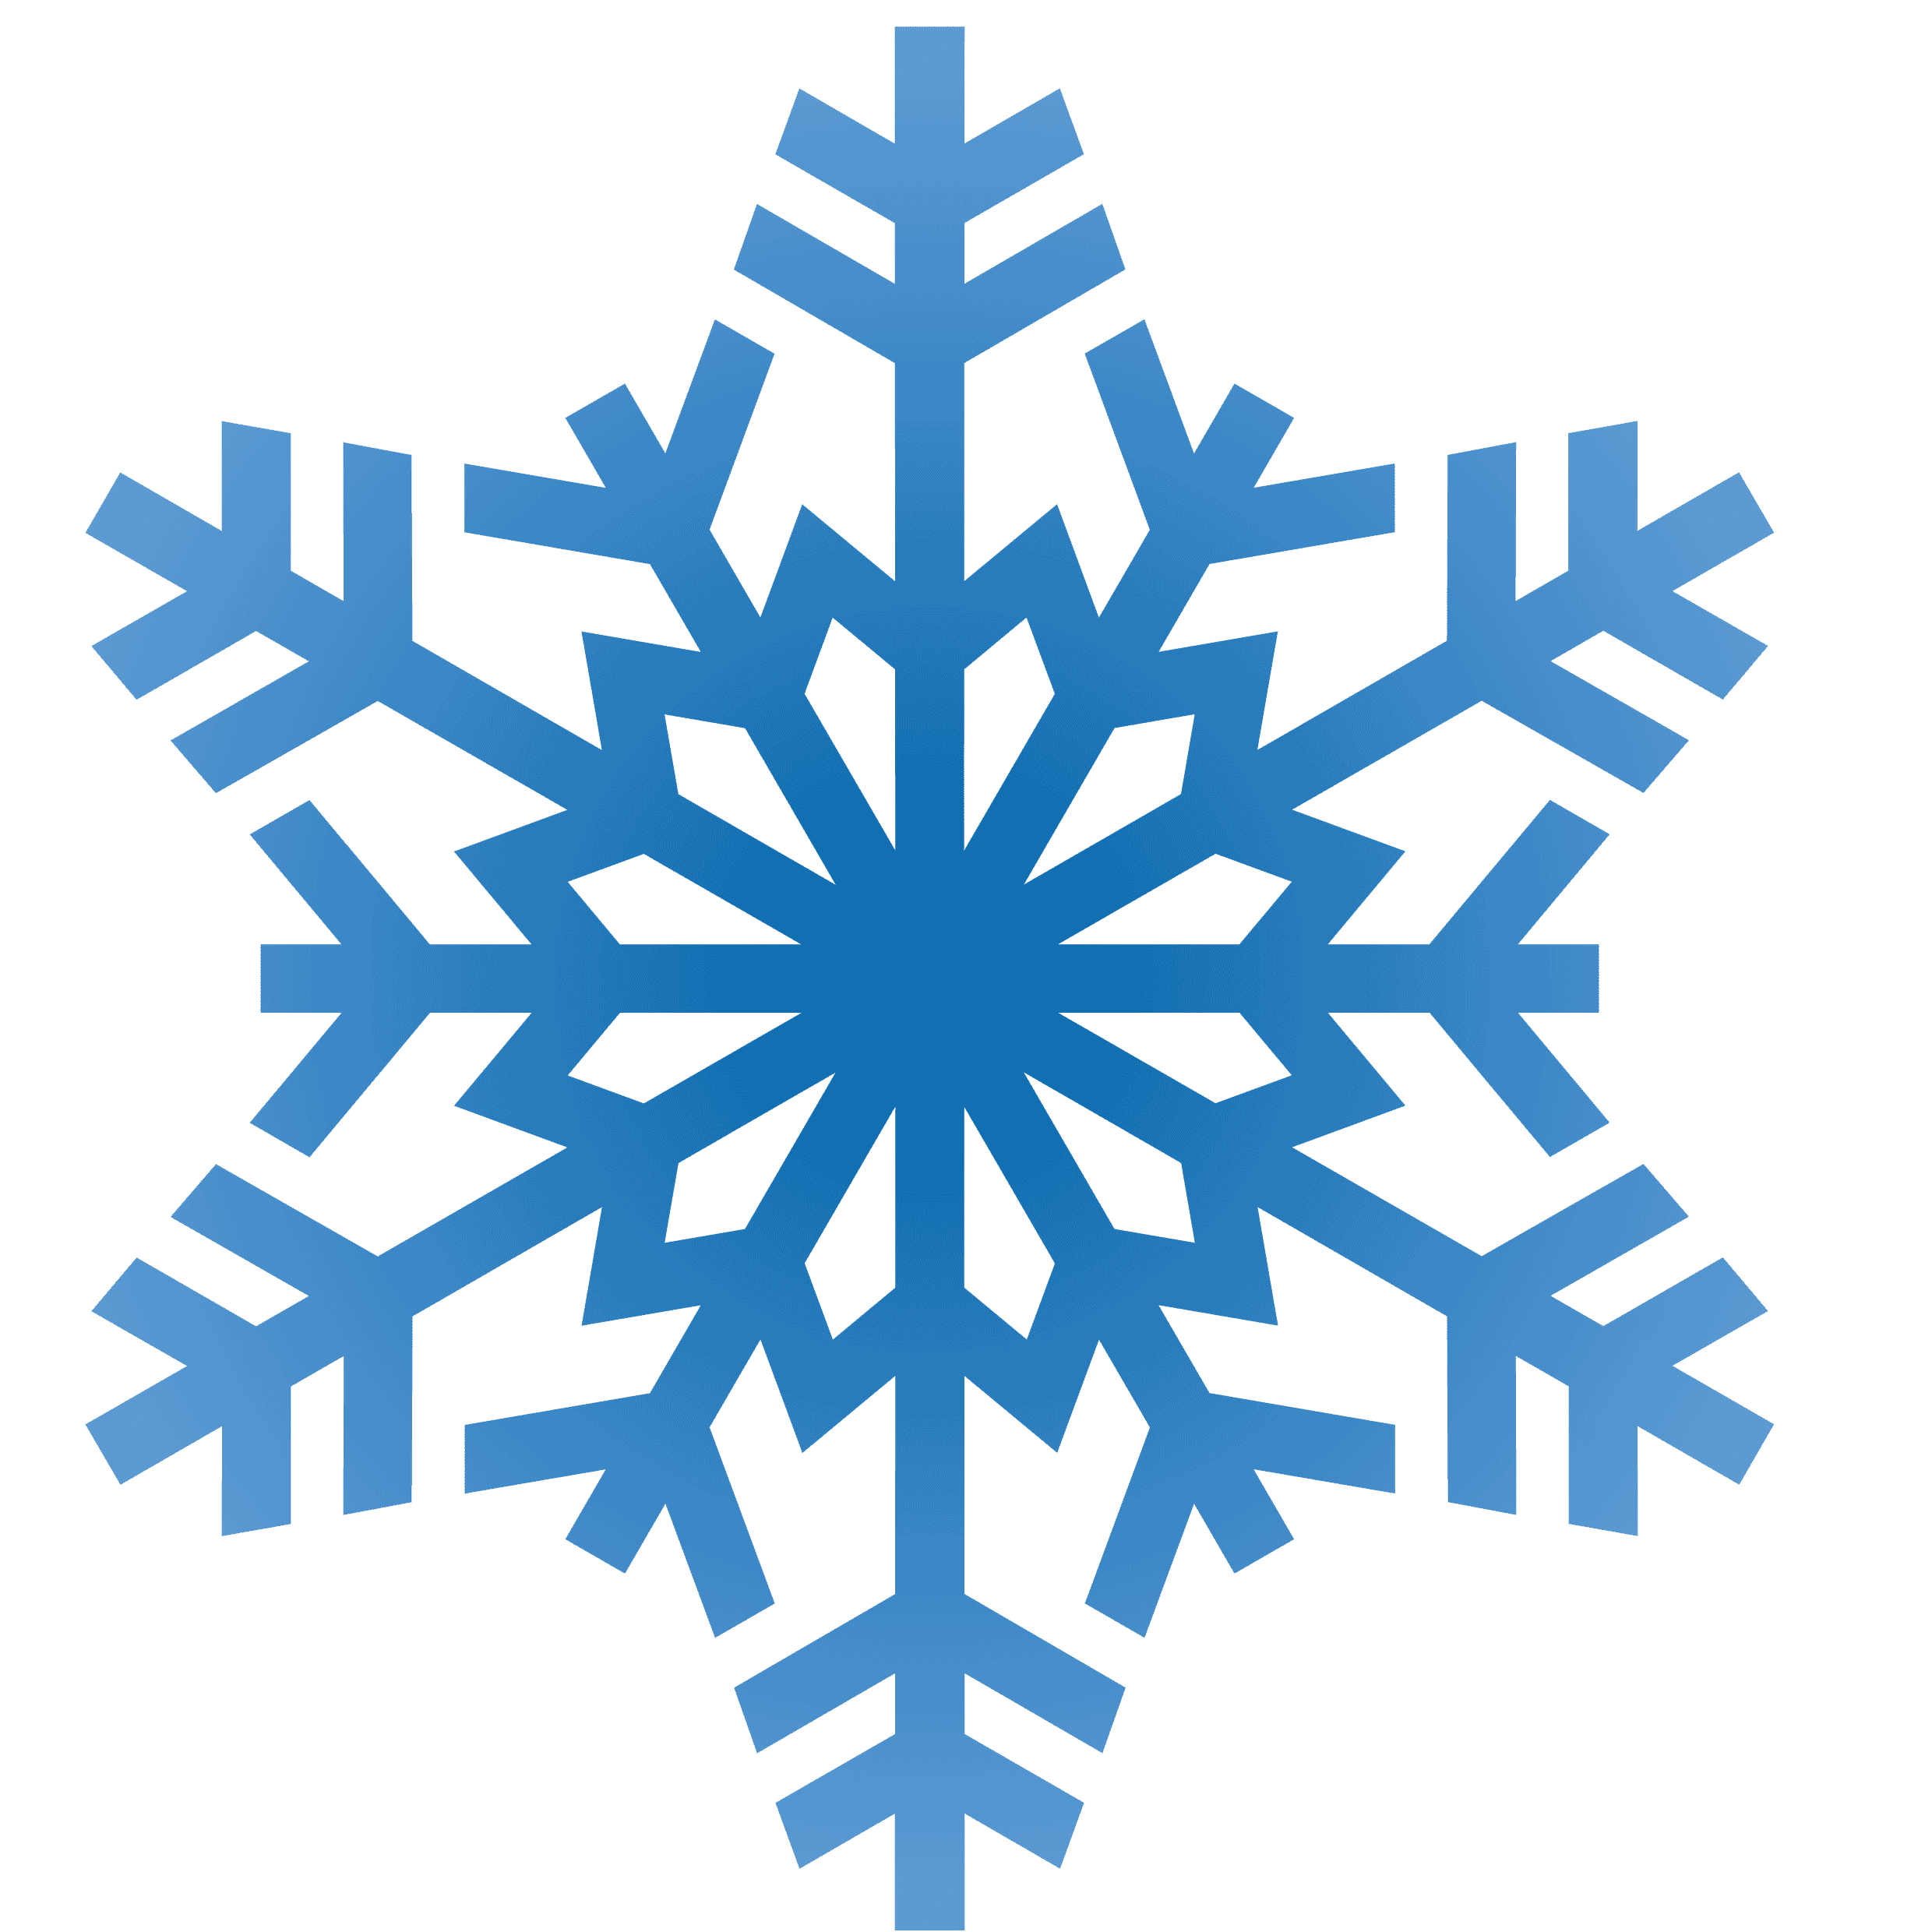 Flakes clipart image royalty free download Snow flakes clipart 2 » Clipart Portal image royalty free download